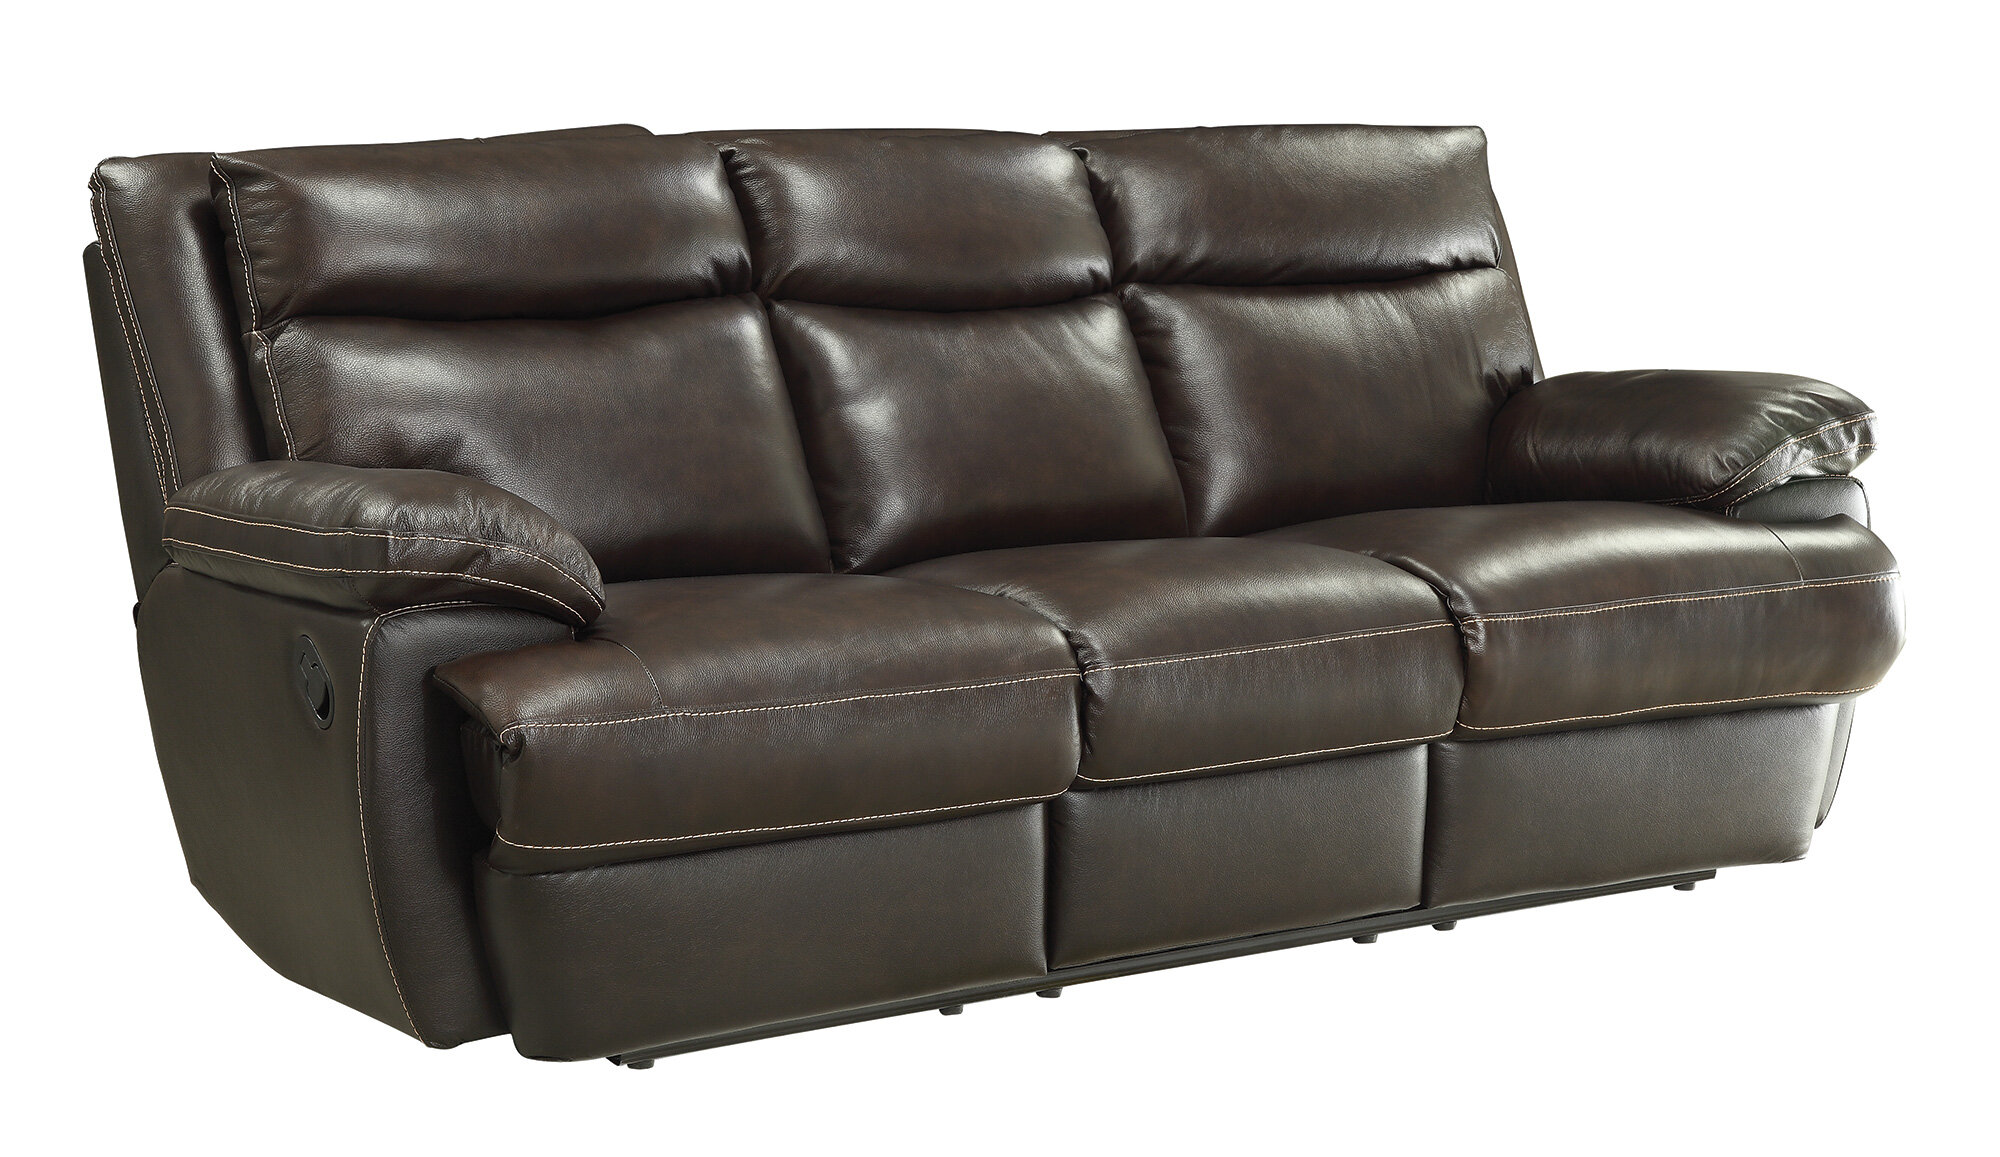 Terrific Hughes Leather Reclining Sofa Pdpeps Interior Chair Design Pdpepsorg